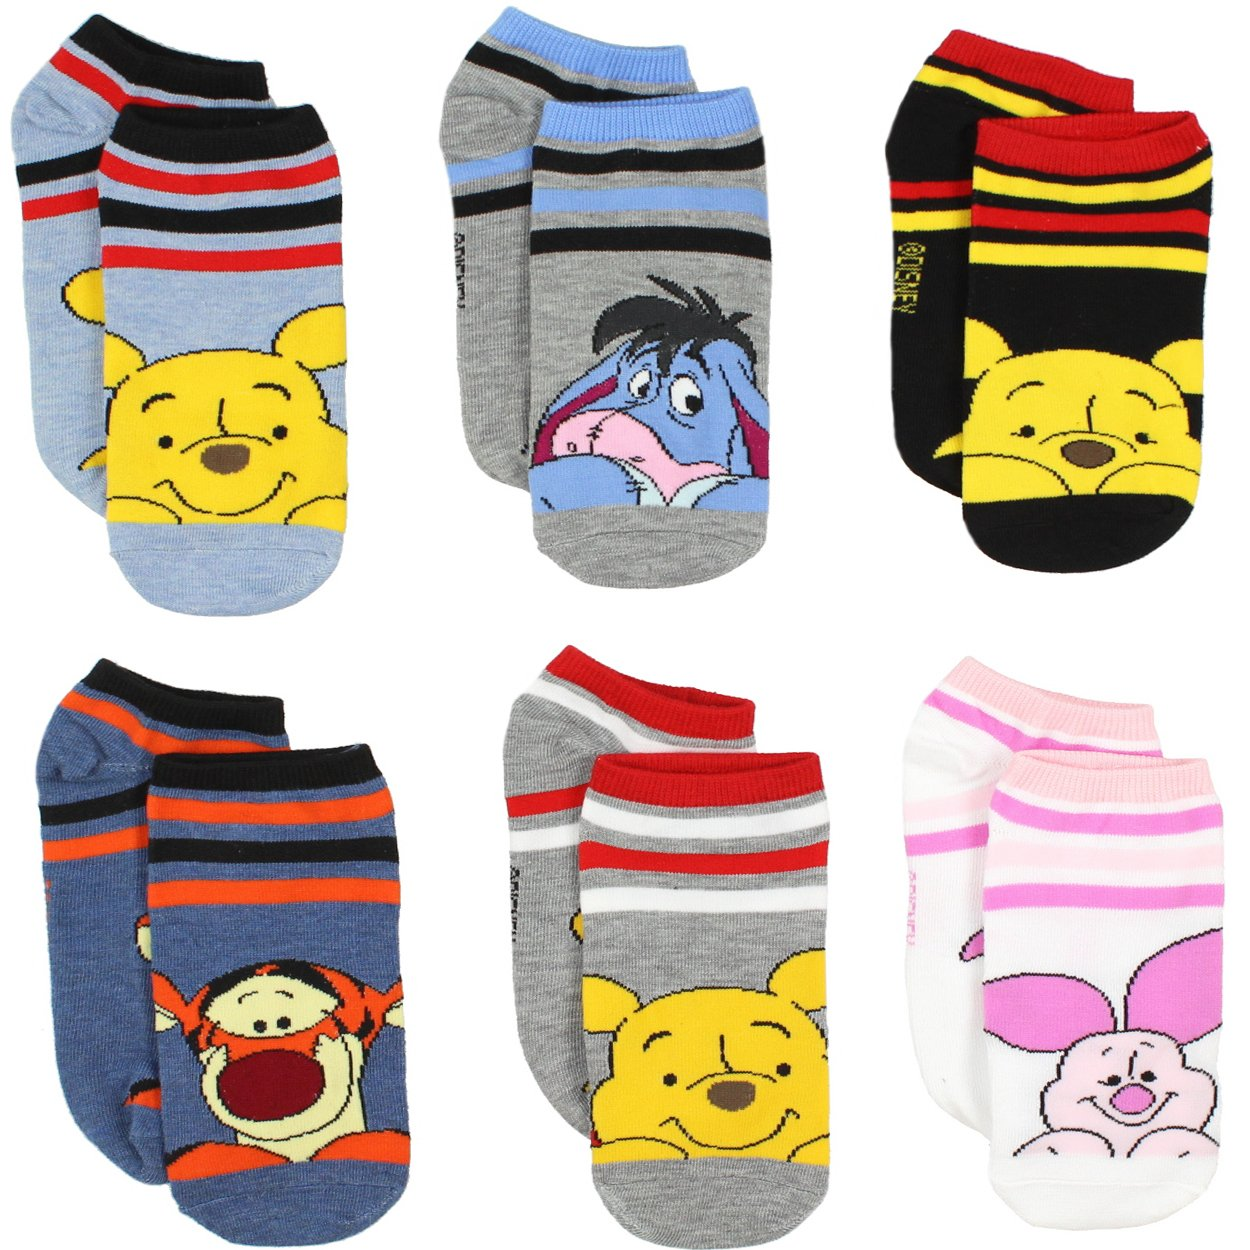 Winnie the Pooh Girls Womens 6 pack Socks (Toddler/Little Kid/Big Kid/Teen/Adult) manufacturer